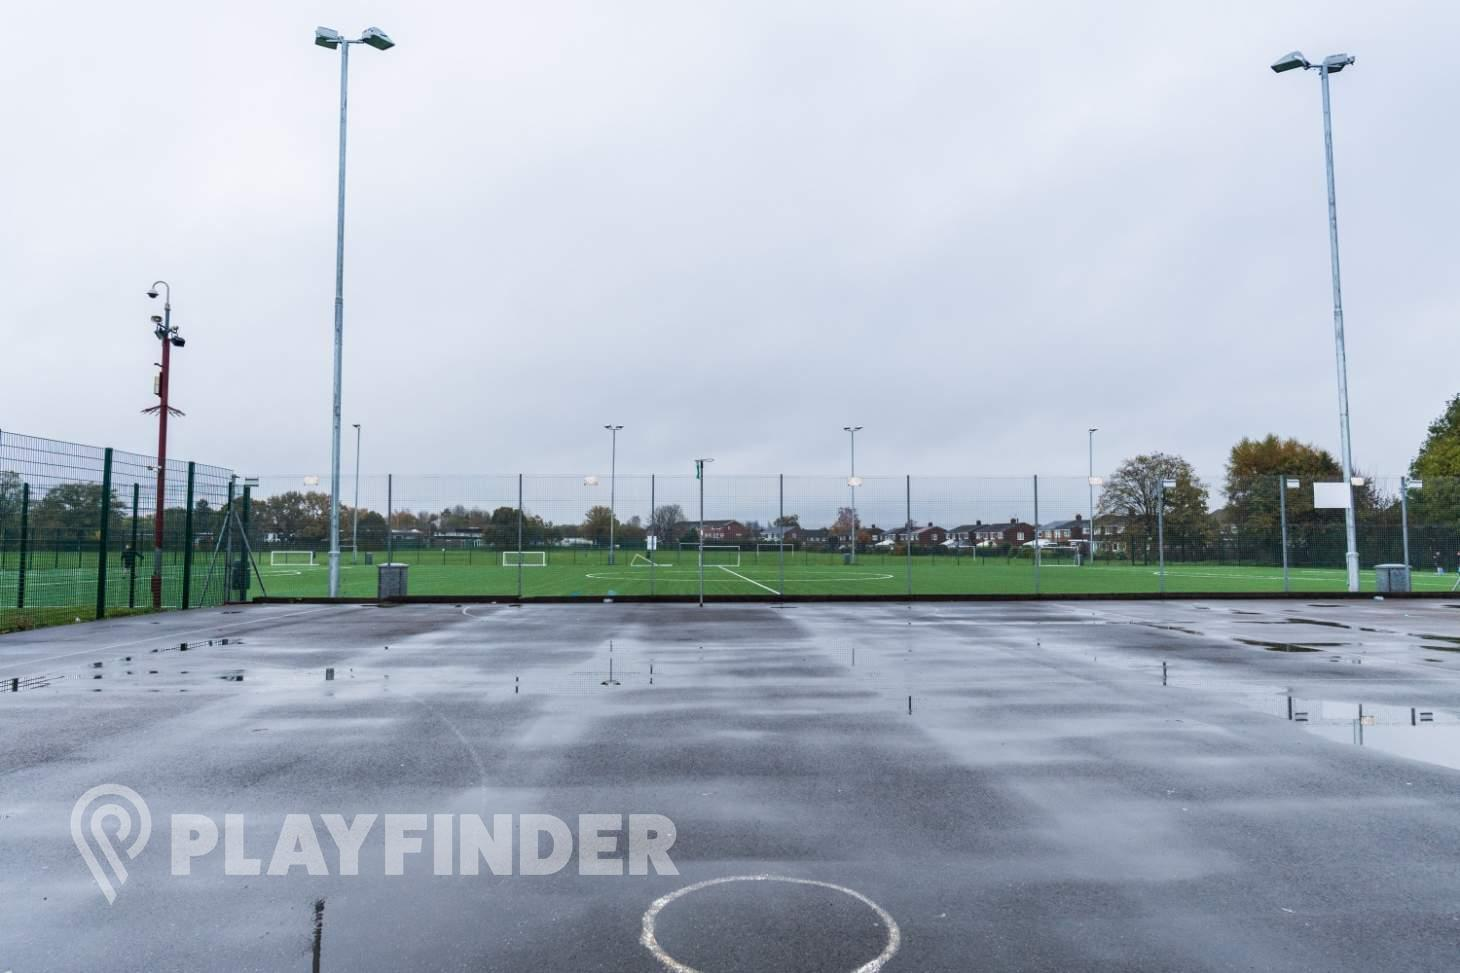 Hazel Grove Sports Centre Outdoor | Concrete netball court